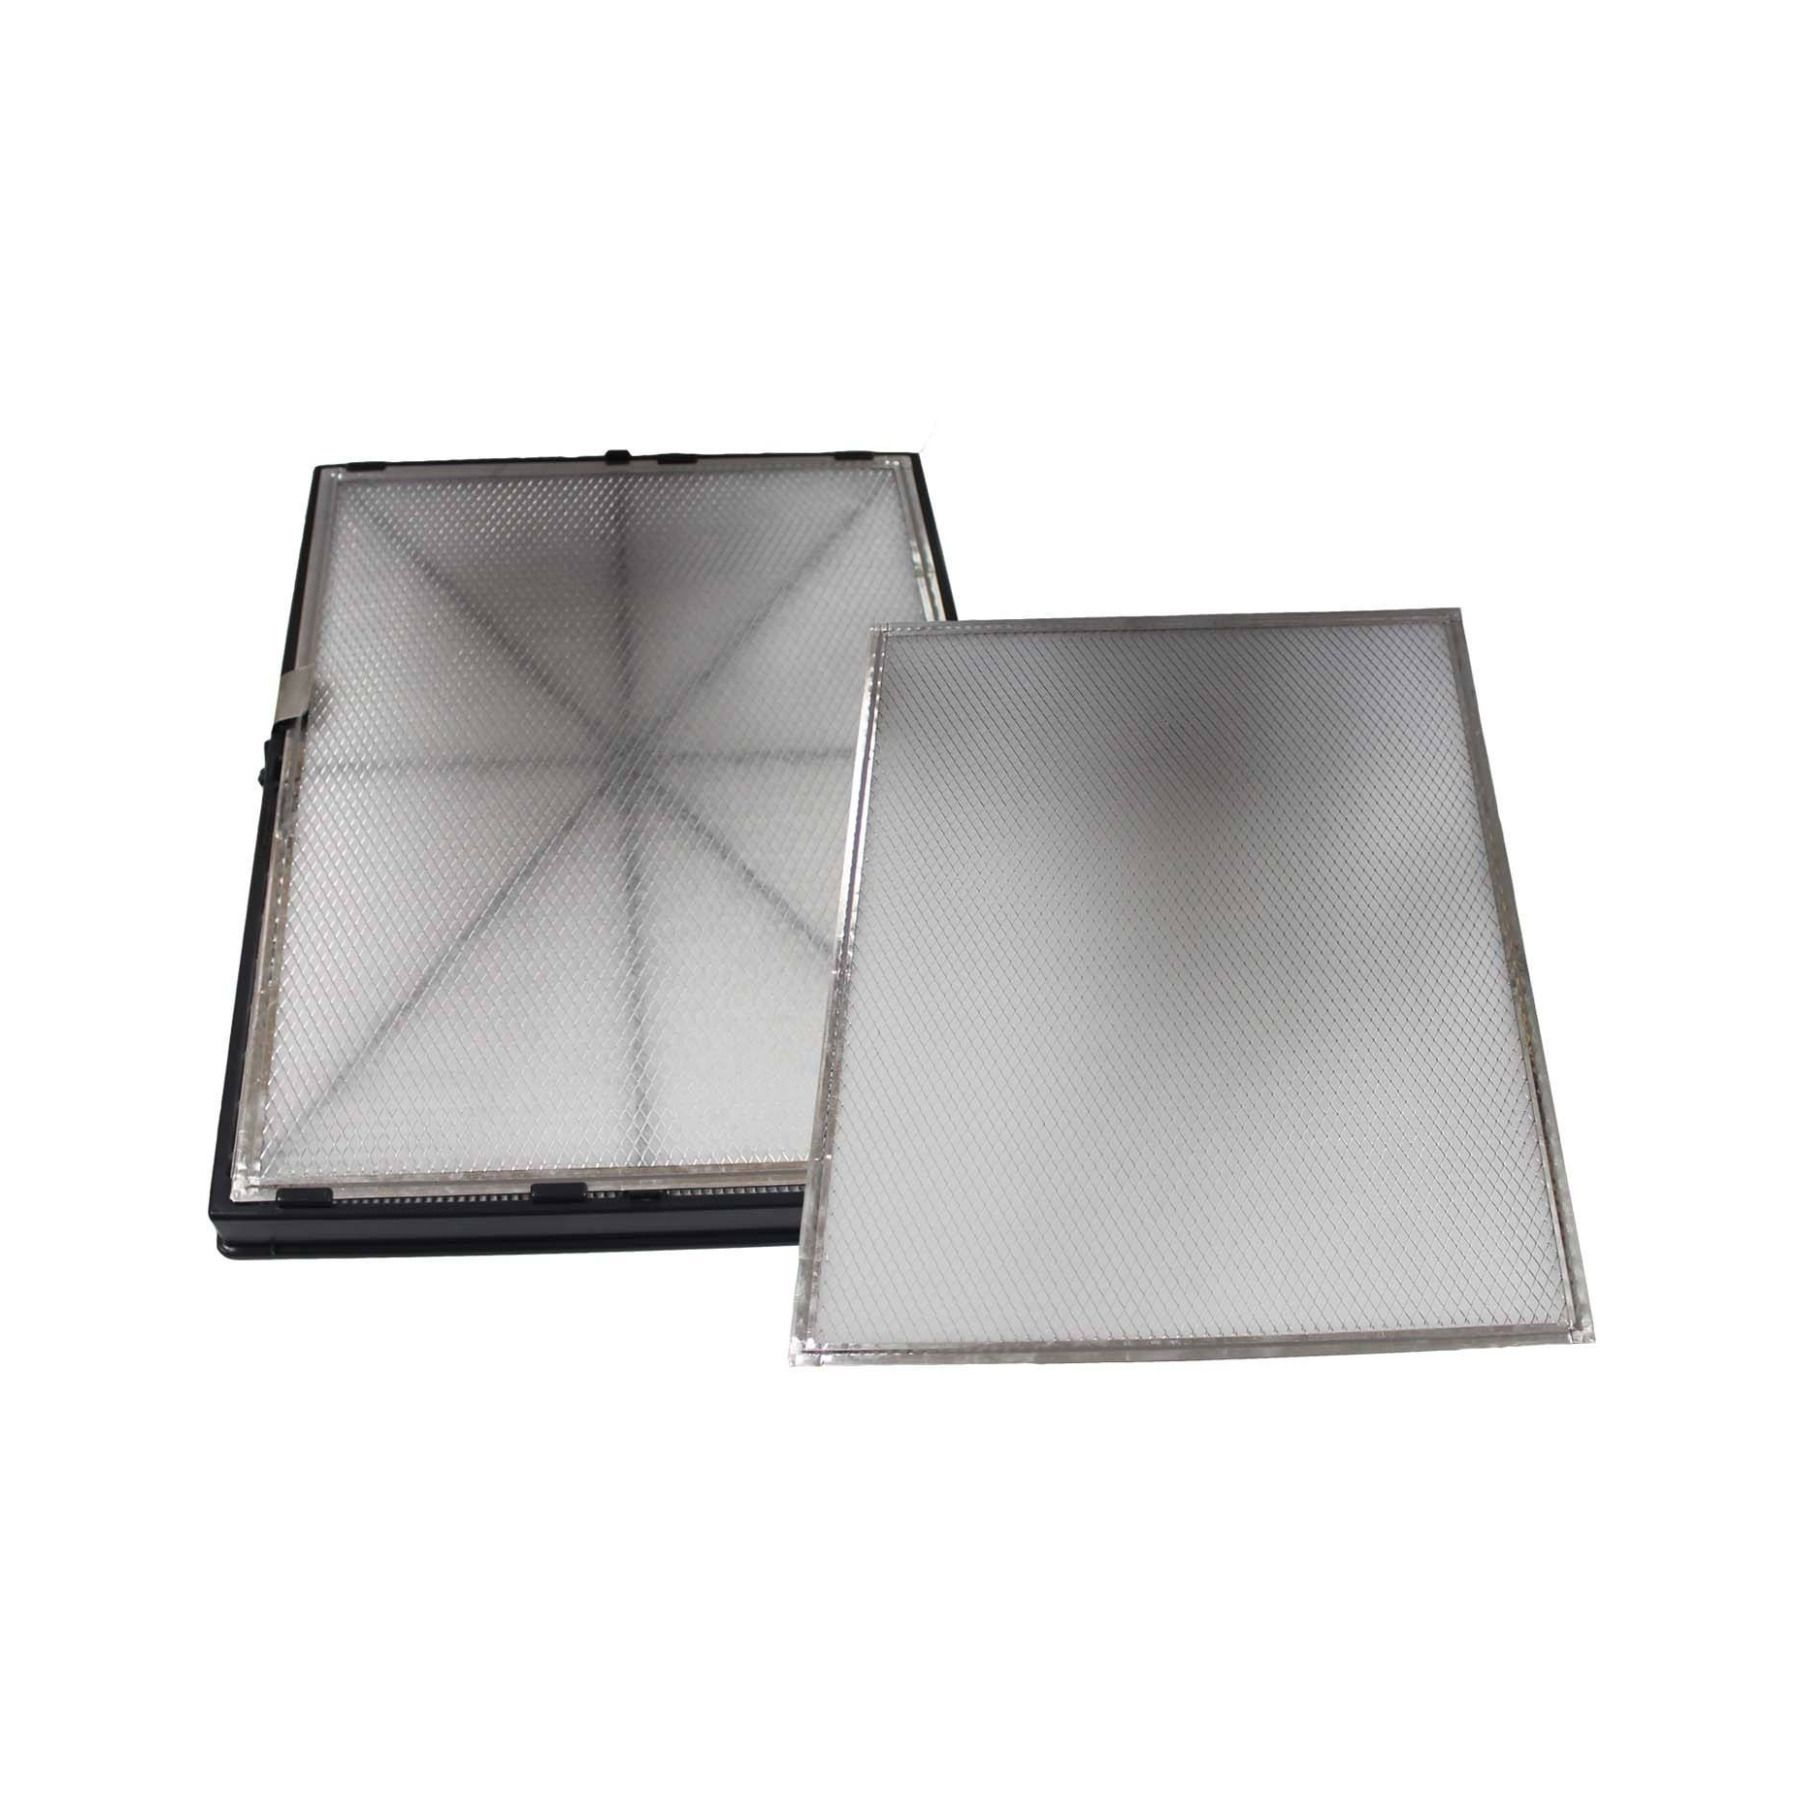 The air filters for your air exchanger serve on primary